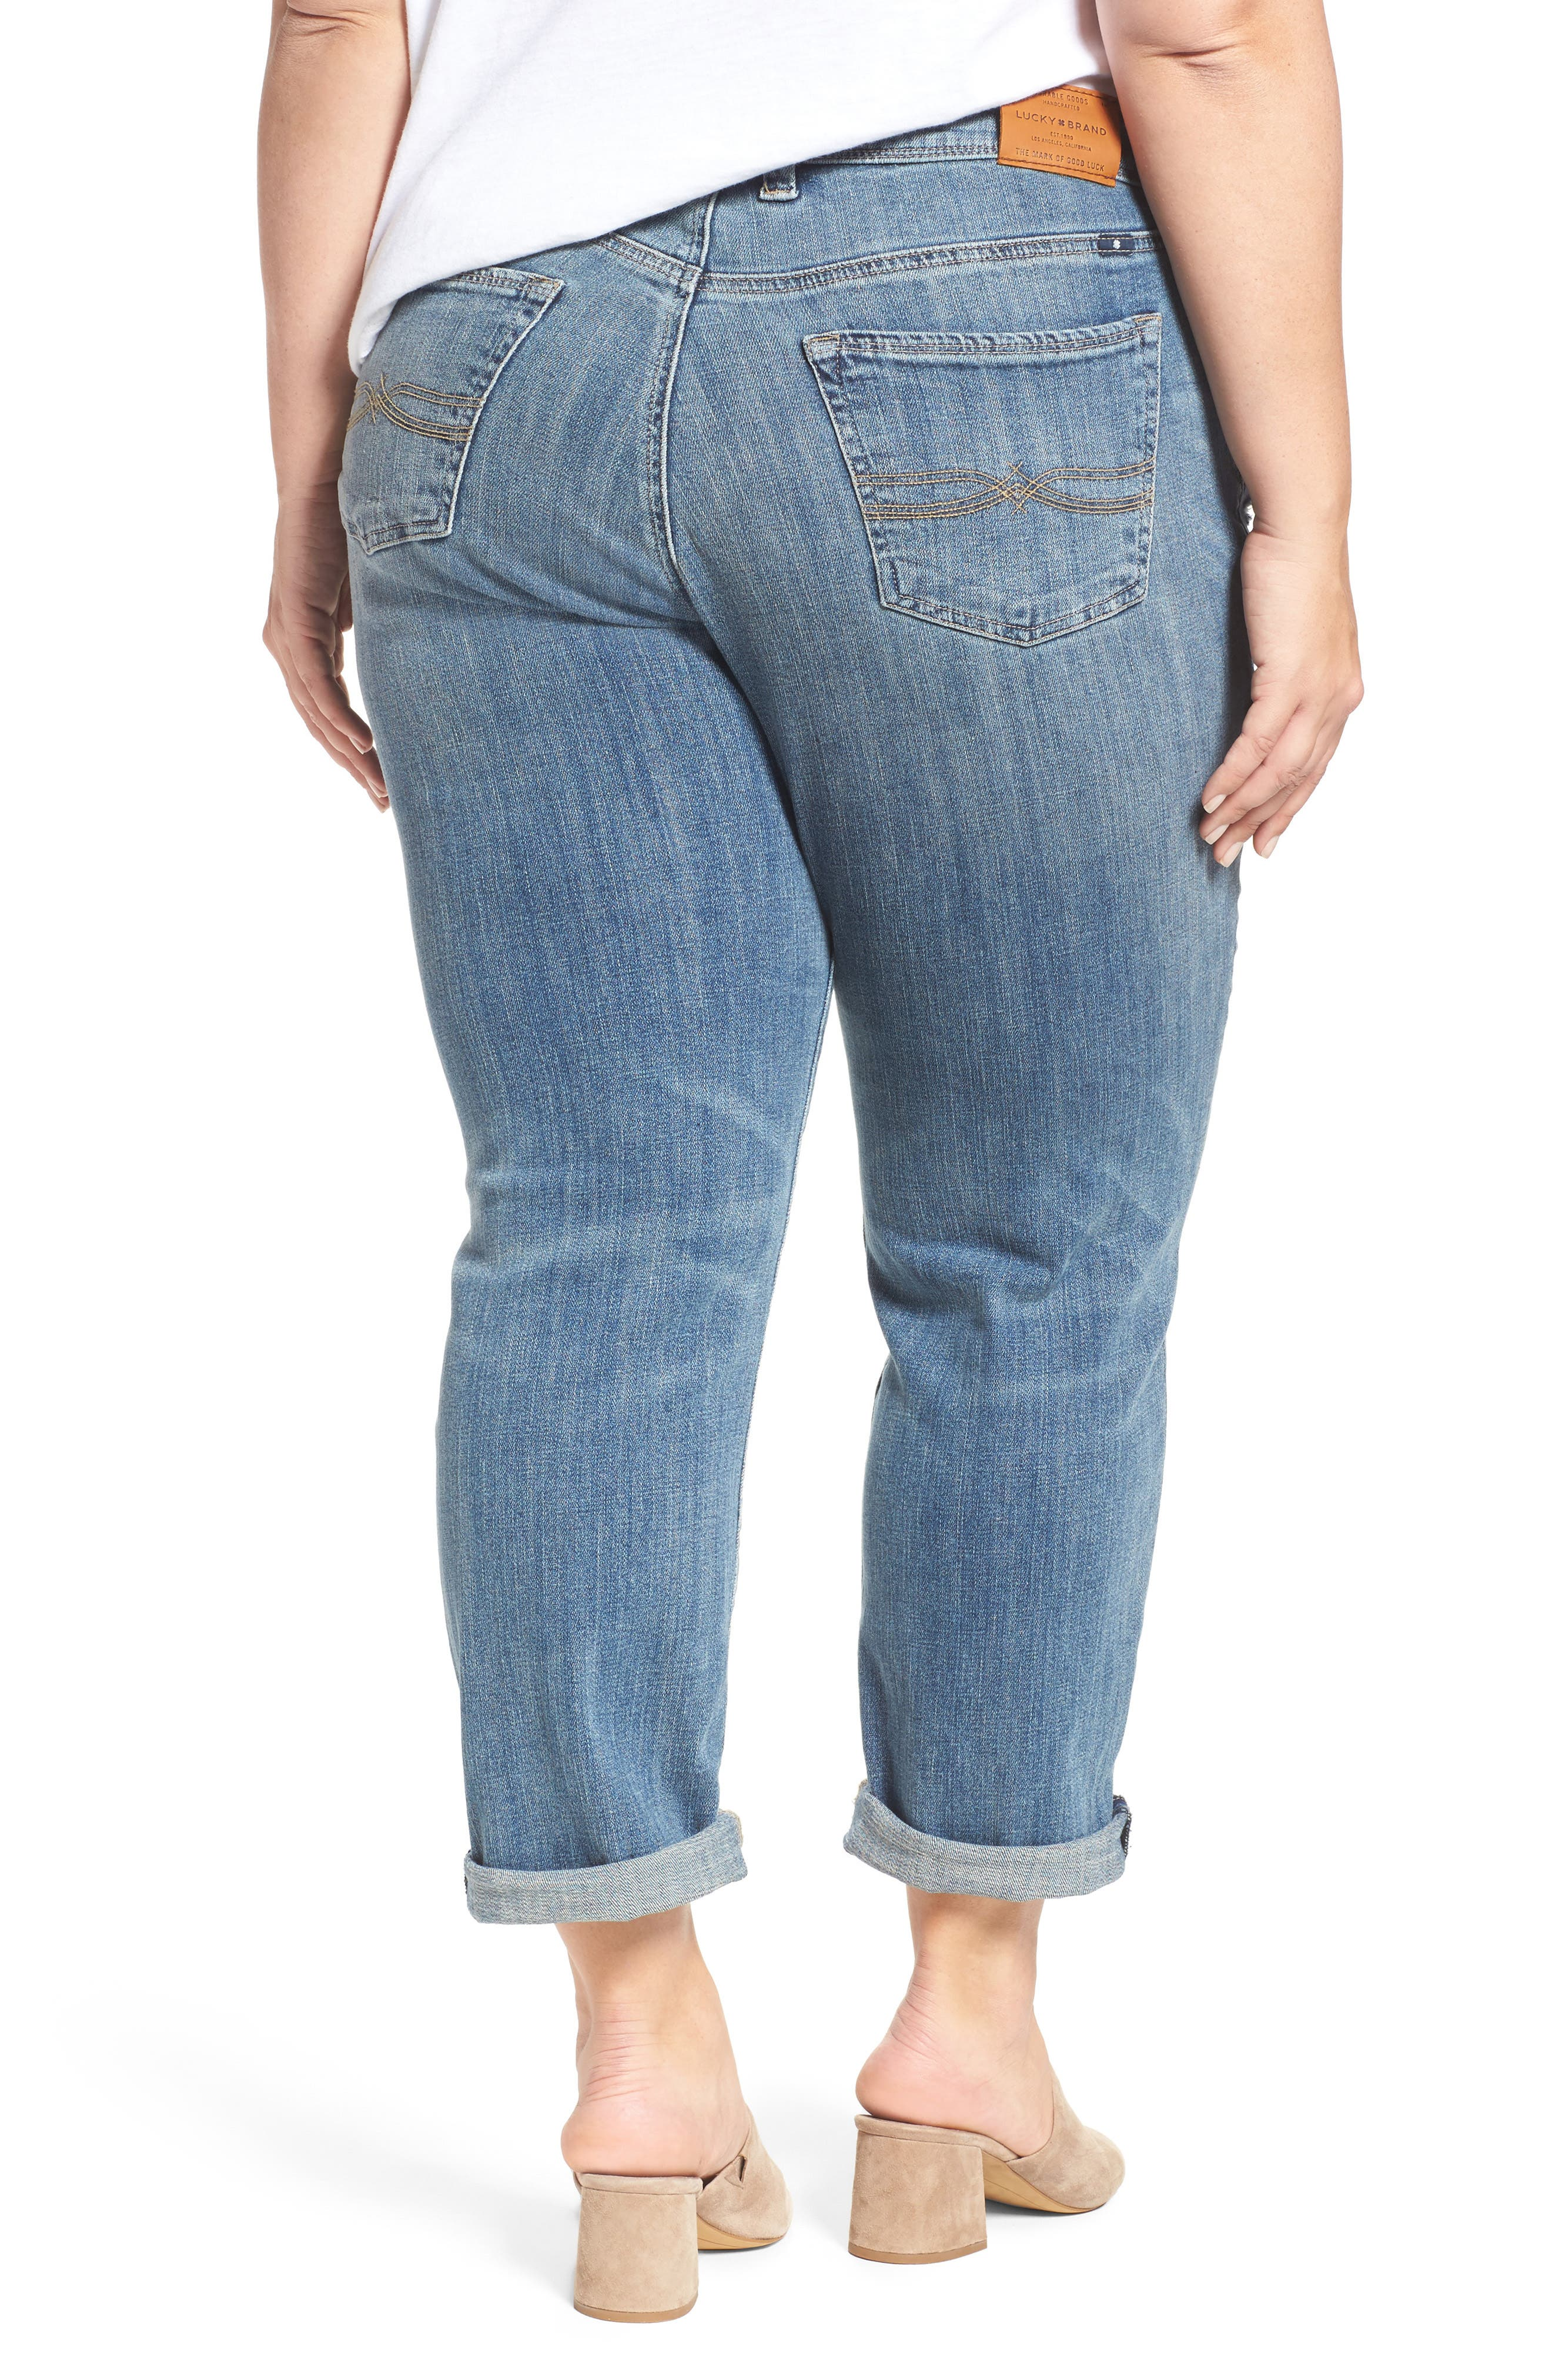 Reese Distressed Stretch Boyfriend Jeans,                             Alternate thumbnail 2, color,                             420